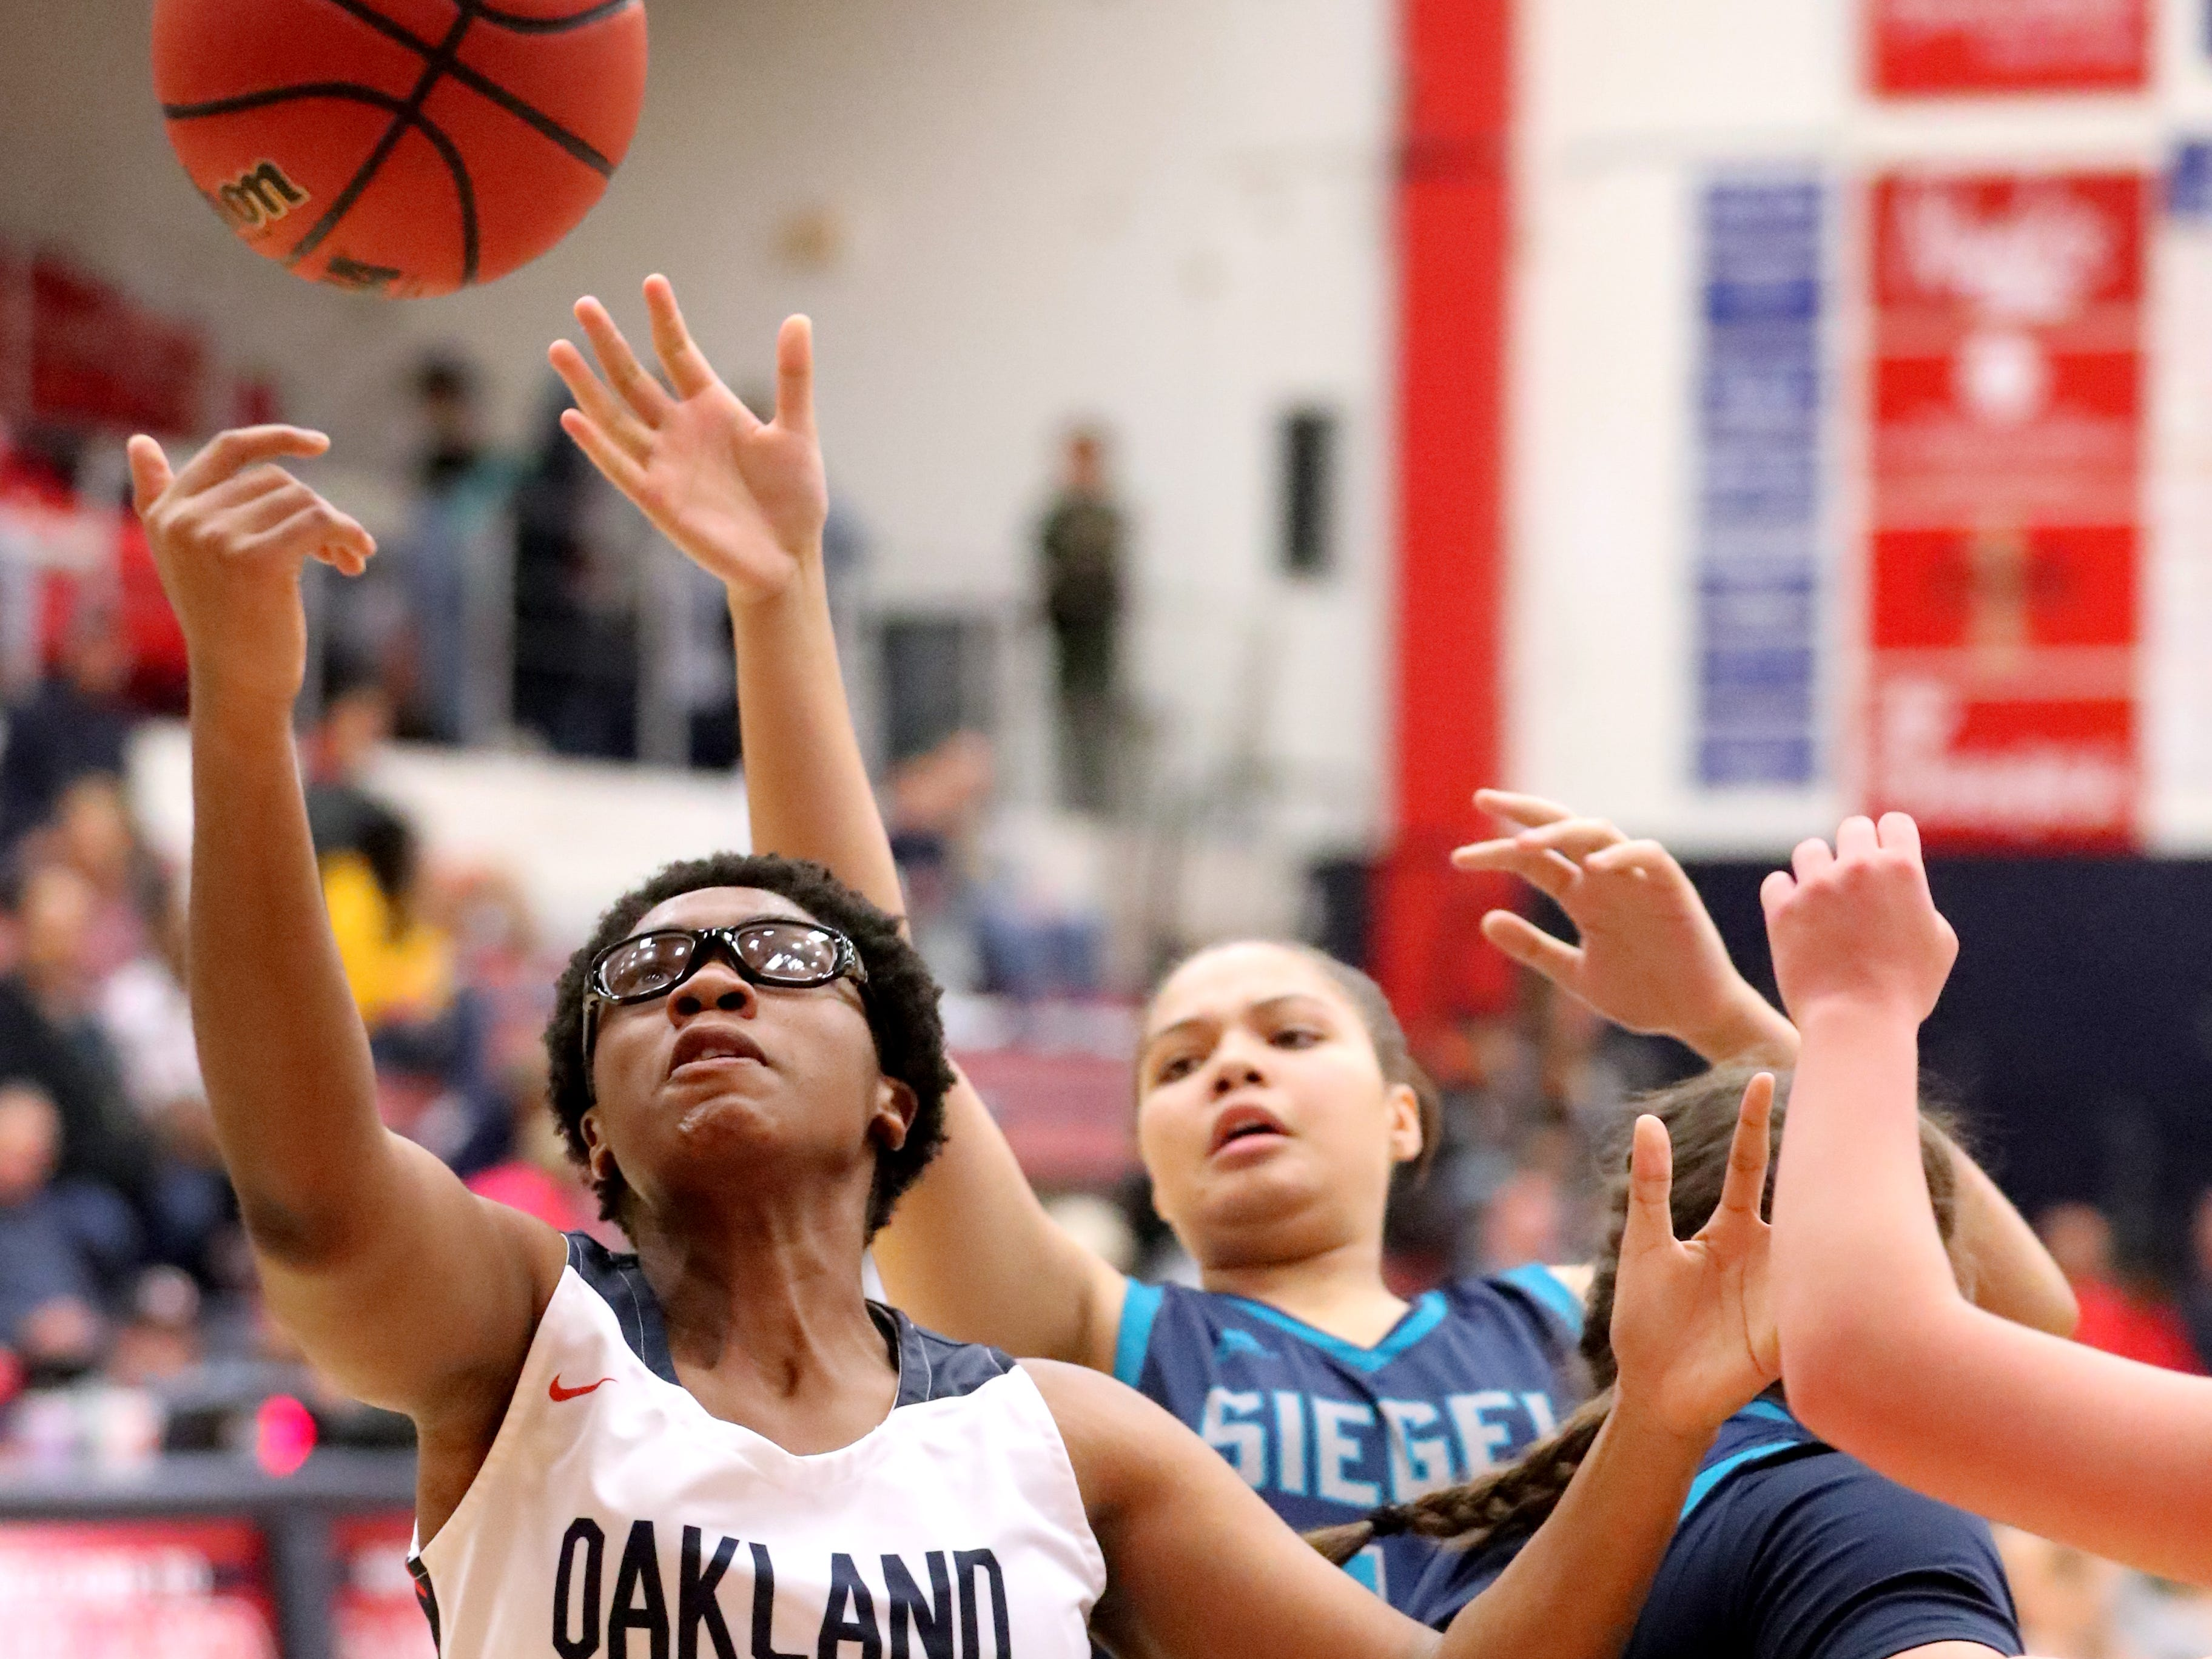 Oakland's Nicole Egeruoh (42) goes after a rebound during the game against Siegel at Oakland on Tuesday, Dec.. 4, 2018.